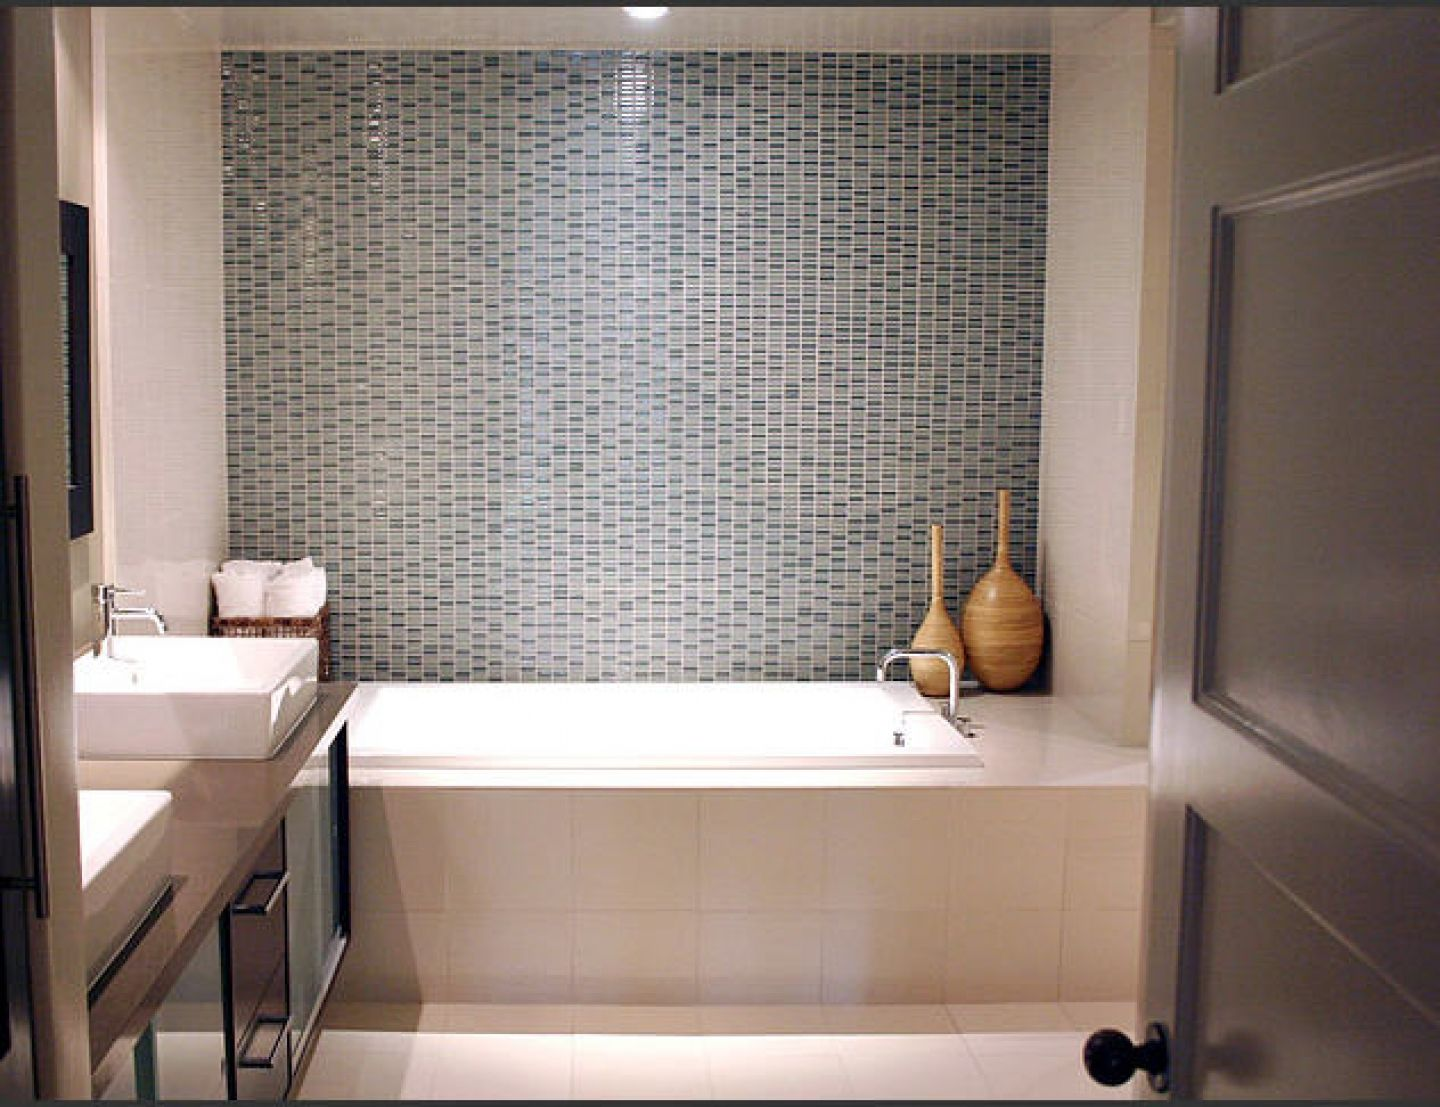 Contemporary Bathrooms Designs Photos  Tags Bathroom Bathroom Simple Modern Bathrooms For Small Spaces Design Inspiration